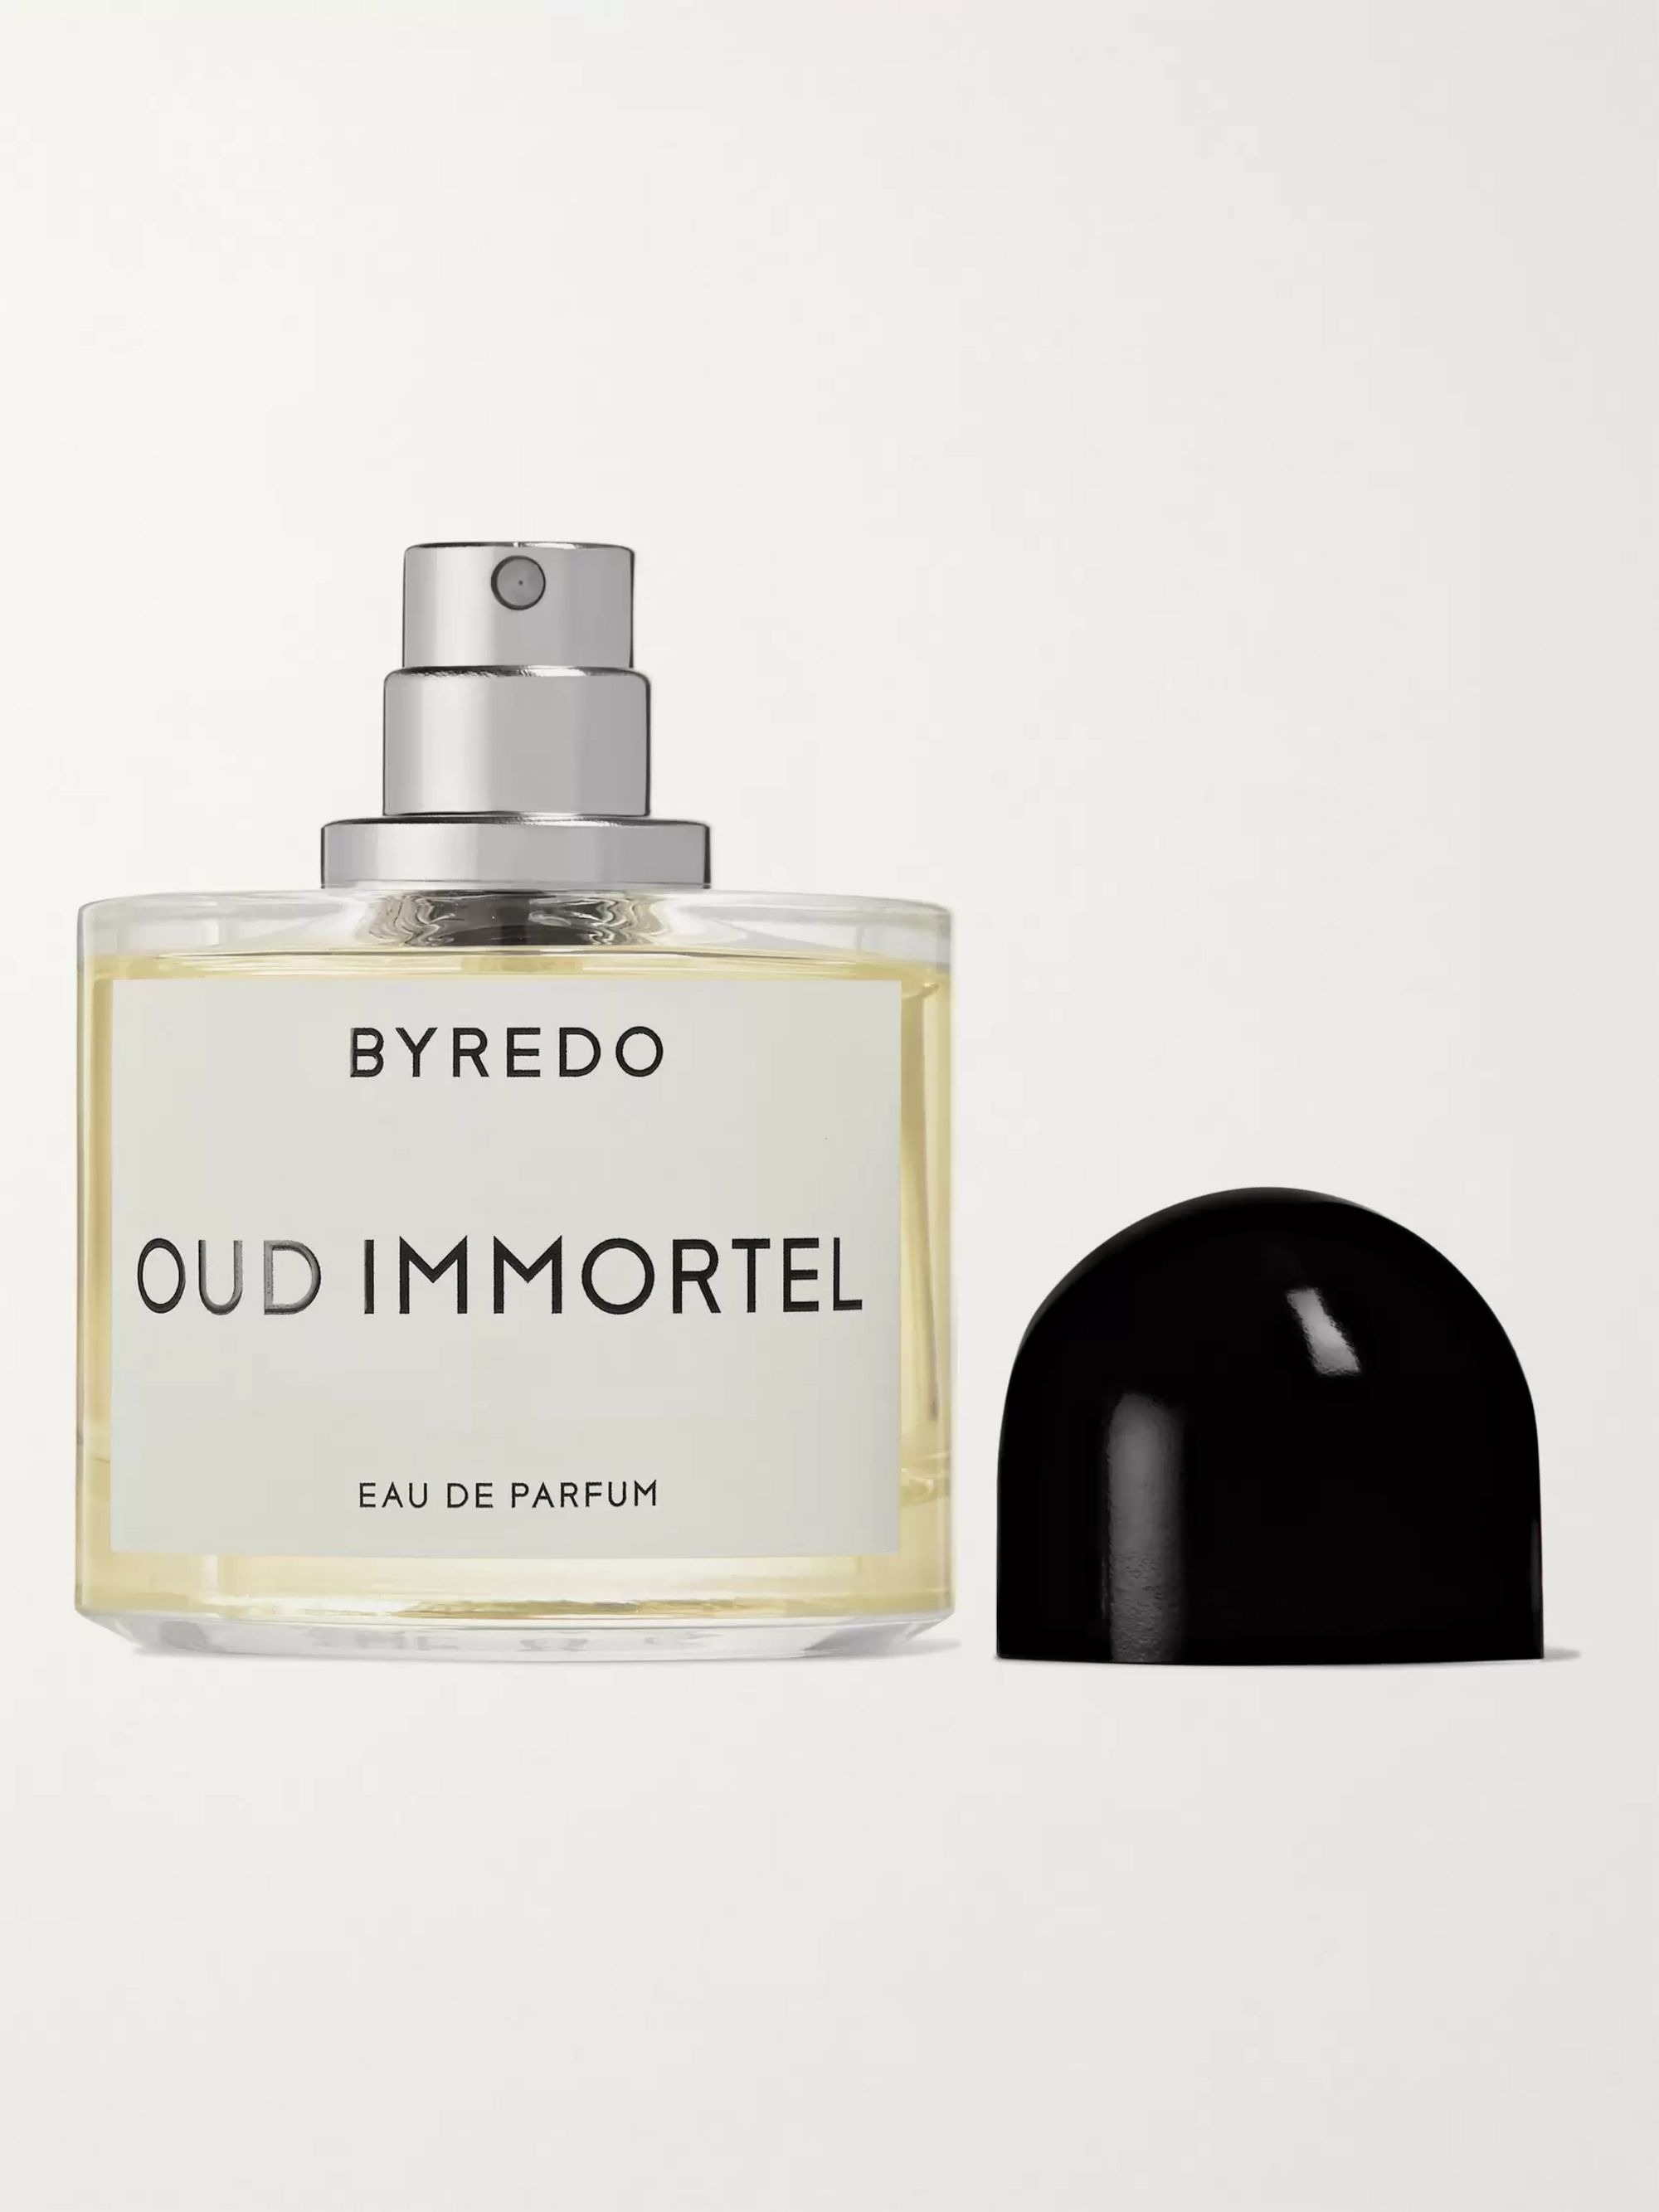 BYREDO Mixed Emotions Eau de Parfum, 50ml